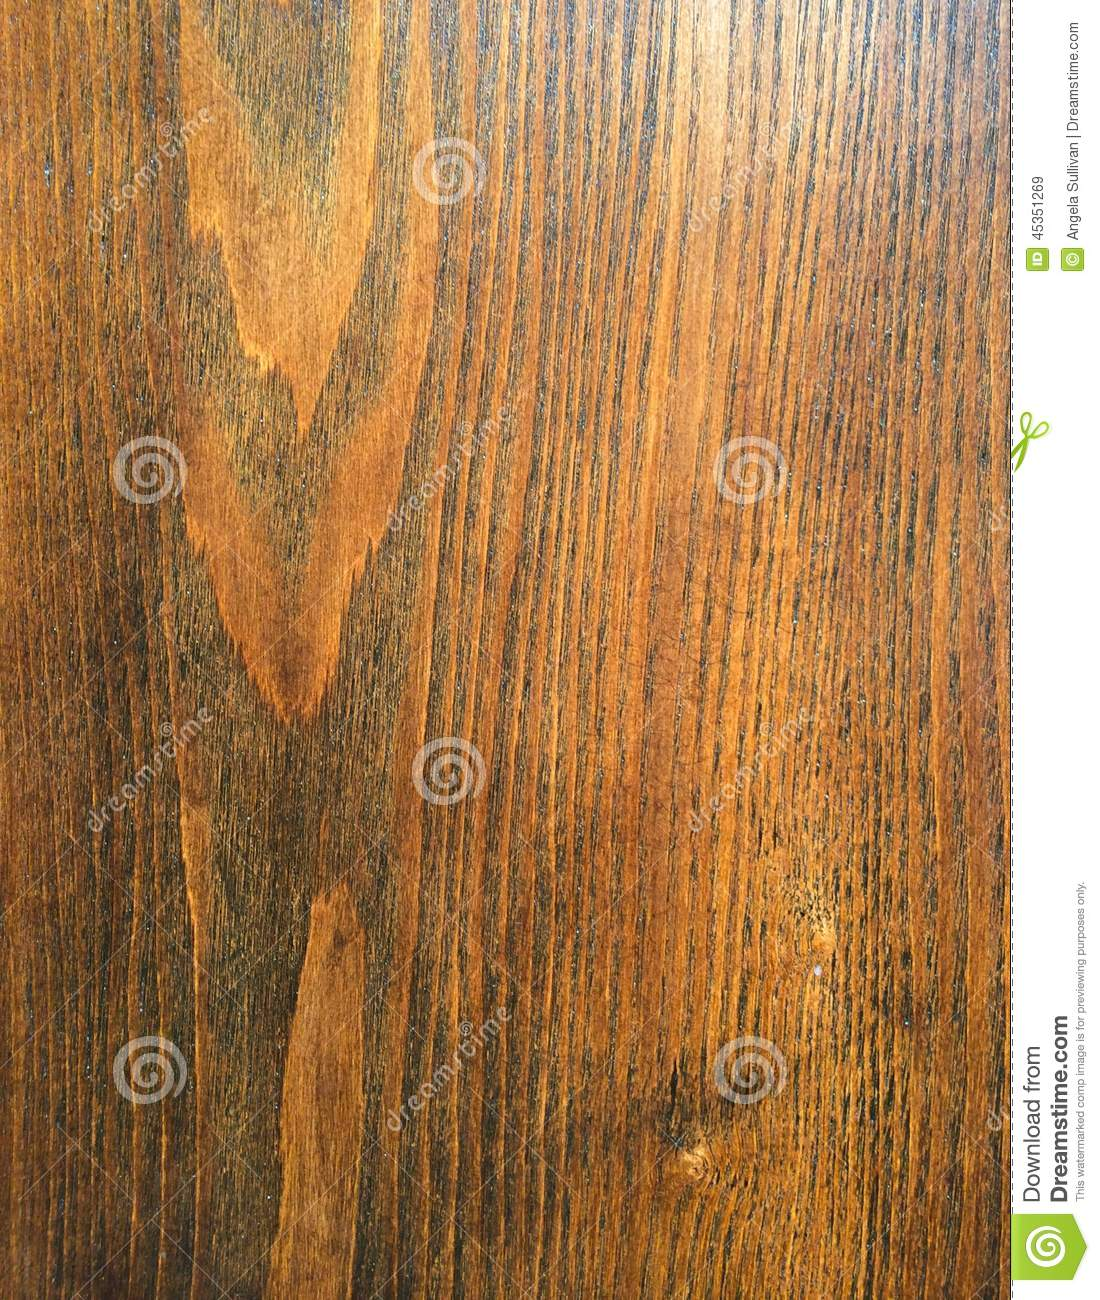 Rustic wood grain rustic wood furniture grain - Background Brown Chestnut Country Finish Furniture Grain Natural Oak Old Rustic Stained Wood